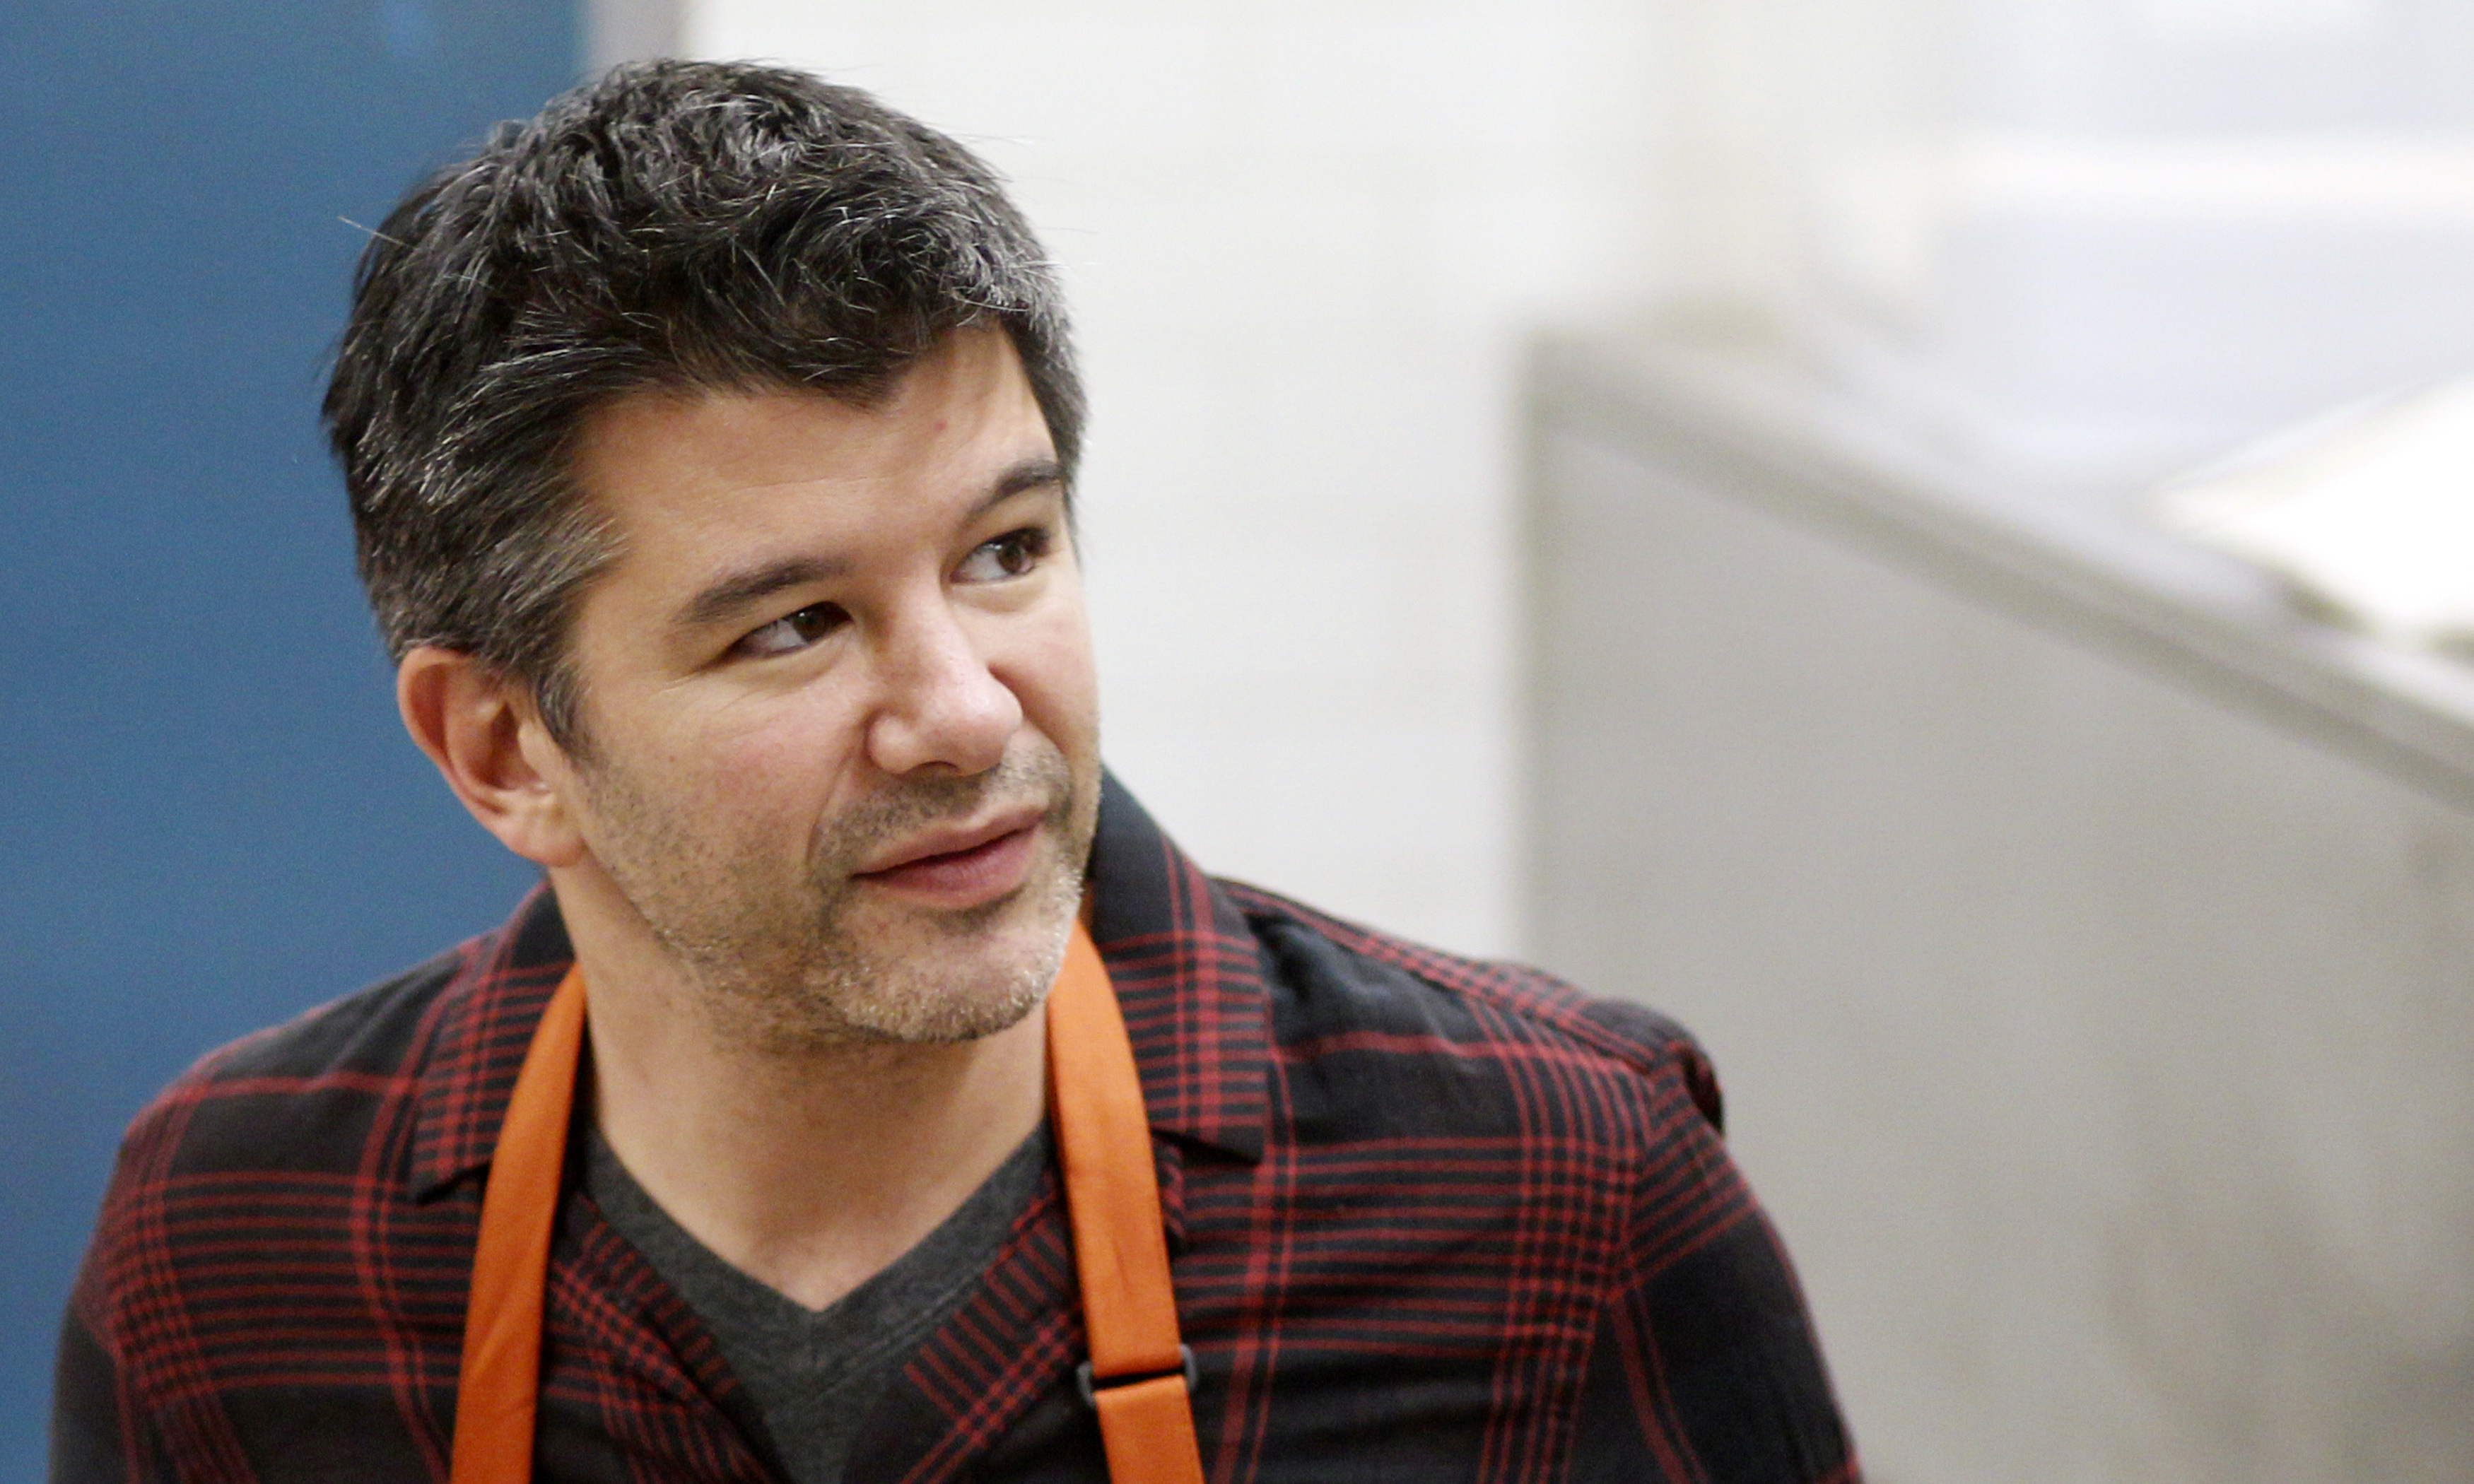 Uber CEO Travis Kalanick works with fourth graders during Cooking Matters, a nutrition class taught by 18 Reasons, a local partner of Share our Strength at Glen Park Elementary School in San Francisco